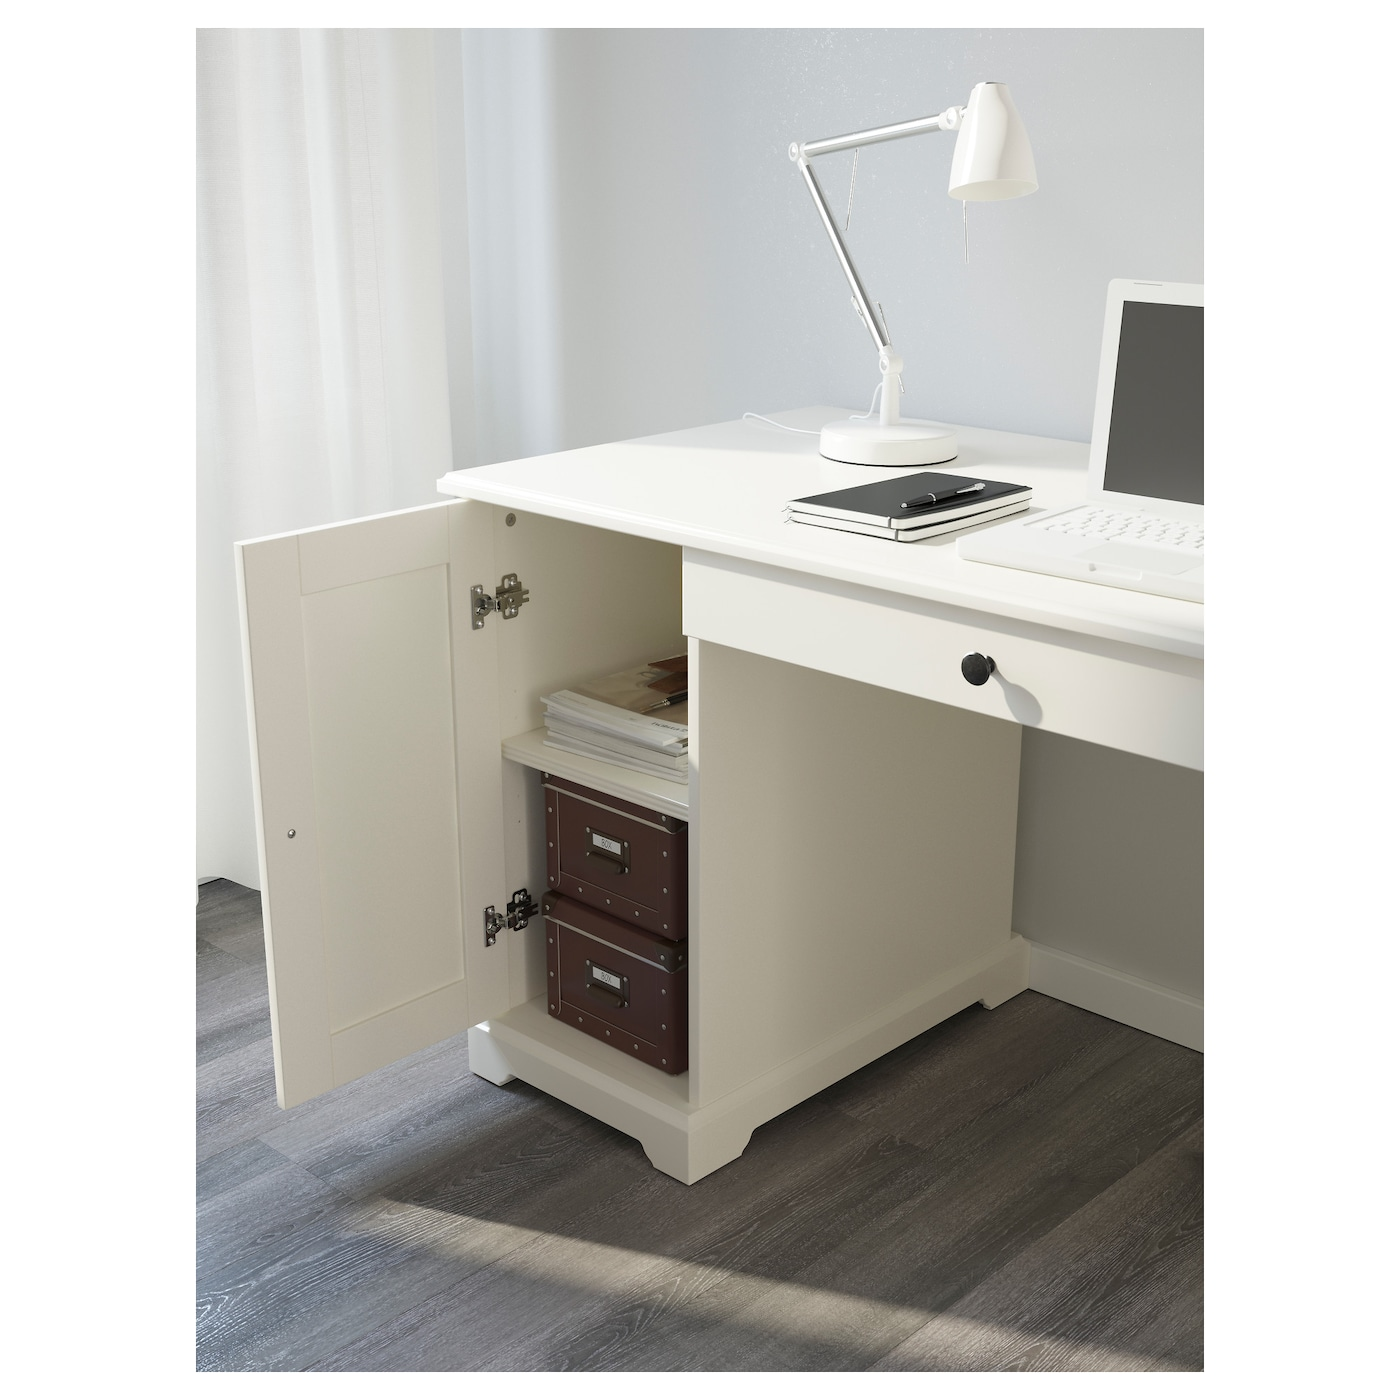 IKEA LIATORP Desk You Can Fit A Computer In The Cabinet, Since The Shelf Is Part 14